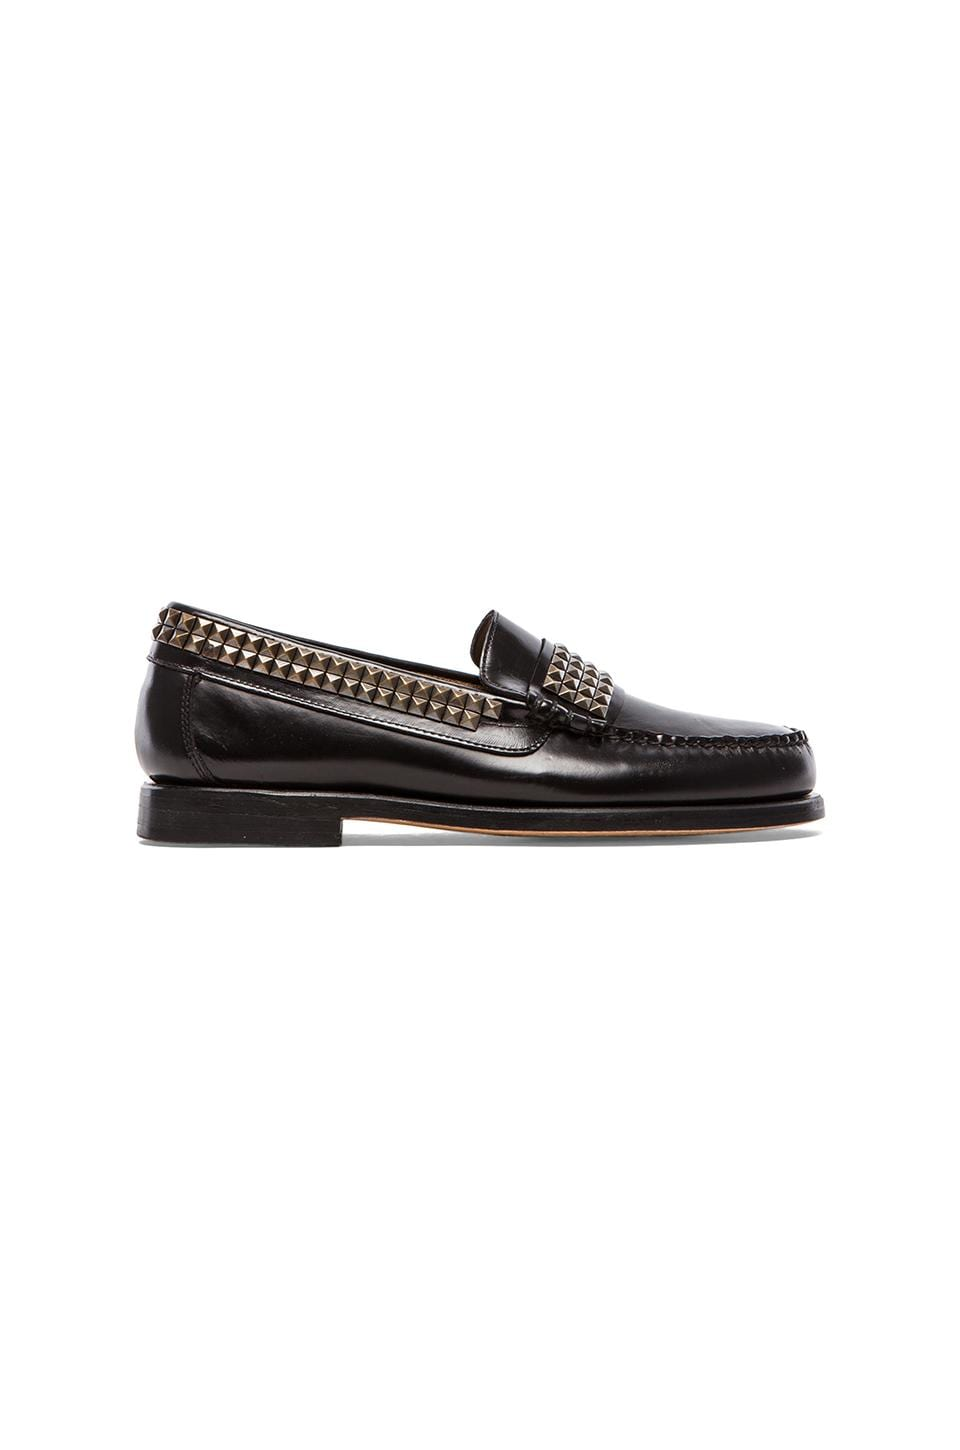 Caminando Studs Loafer in Black